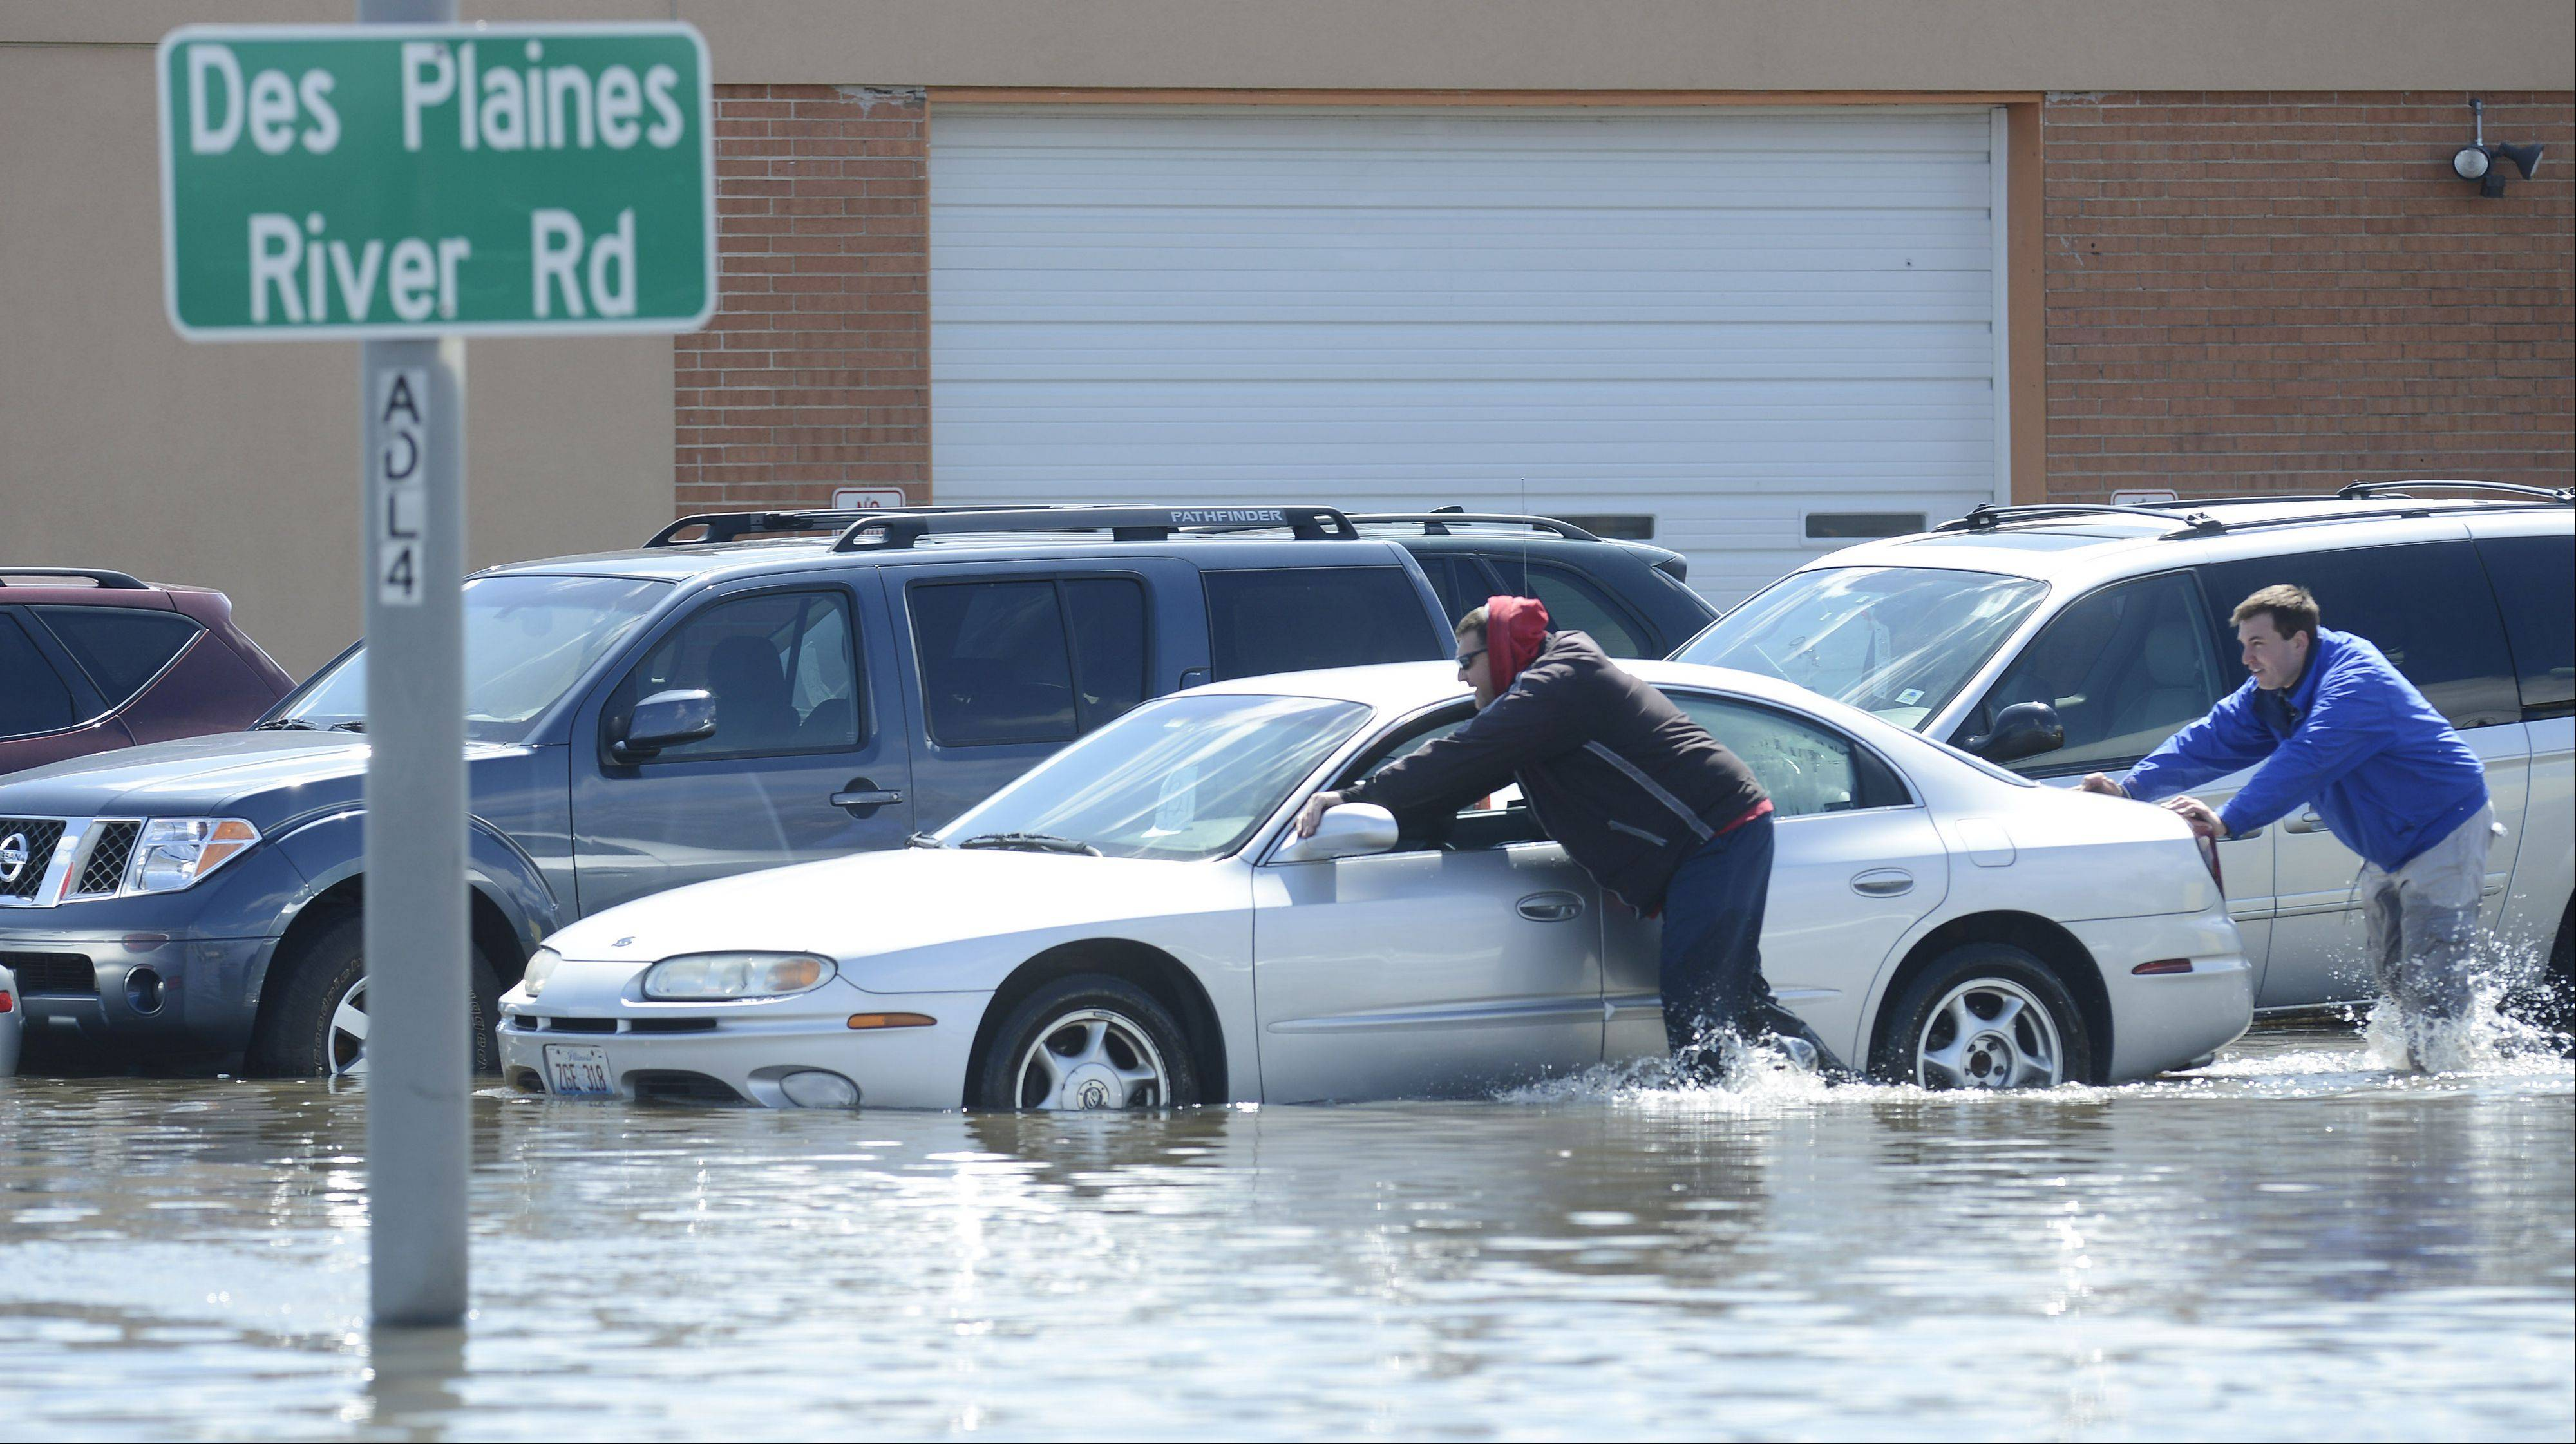 Steve Rush, left, and Rob Burns push a car from a flooded used car lot toward higher ground in Des Plaines Saturday. The pair avoided running the operable cars in the higher water, then started them once they were safely on higher ground.